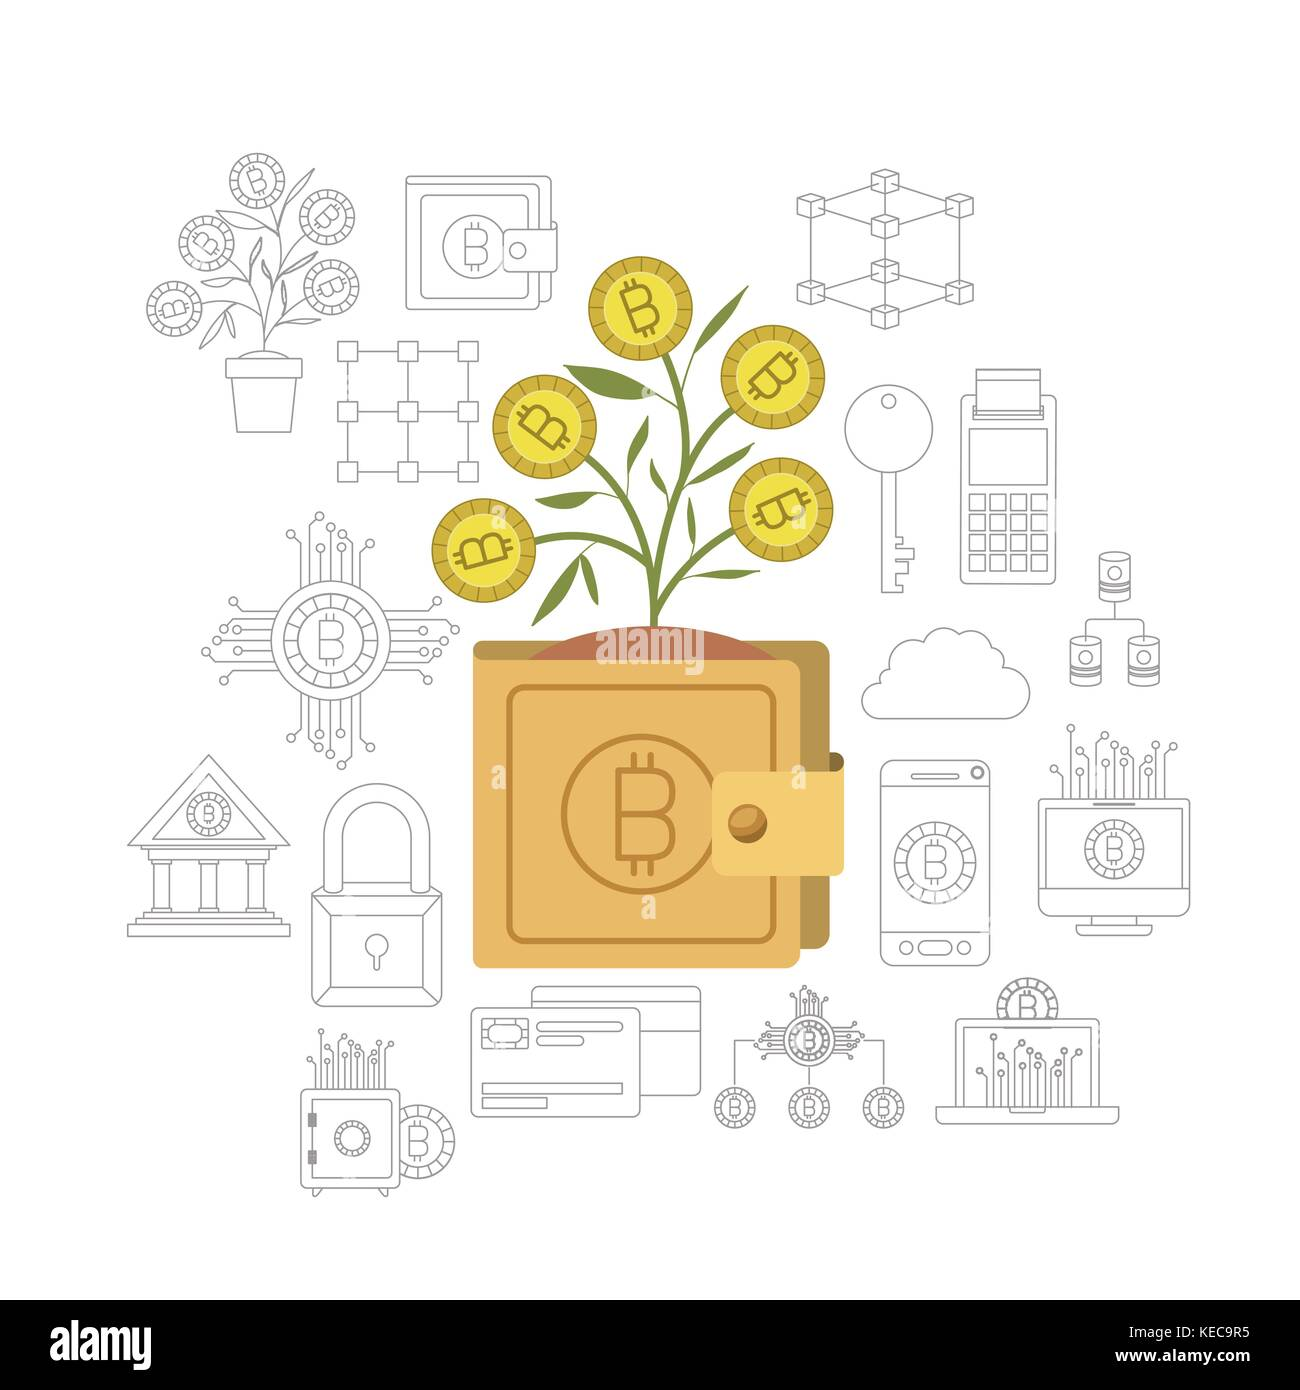 bitcoin wallet growing currency in closeup and bitcoin related icons in monochrome background - Stock Image